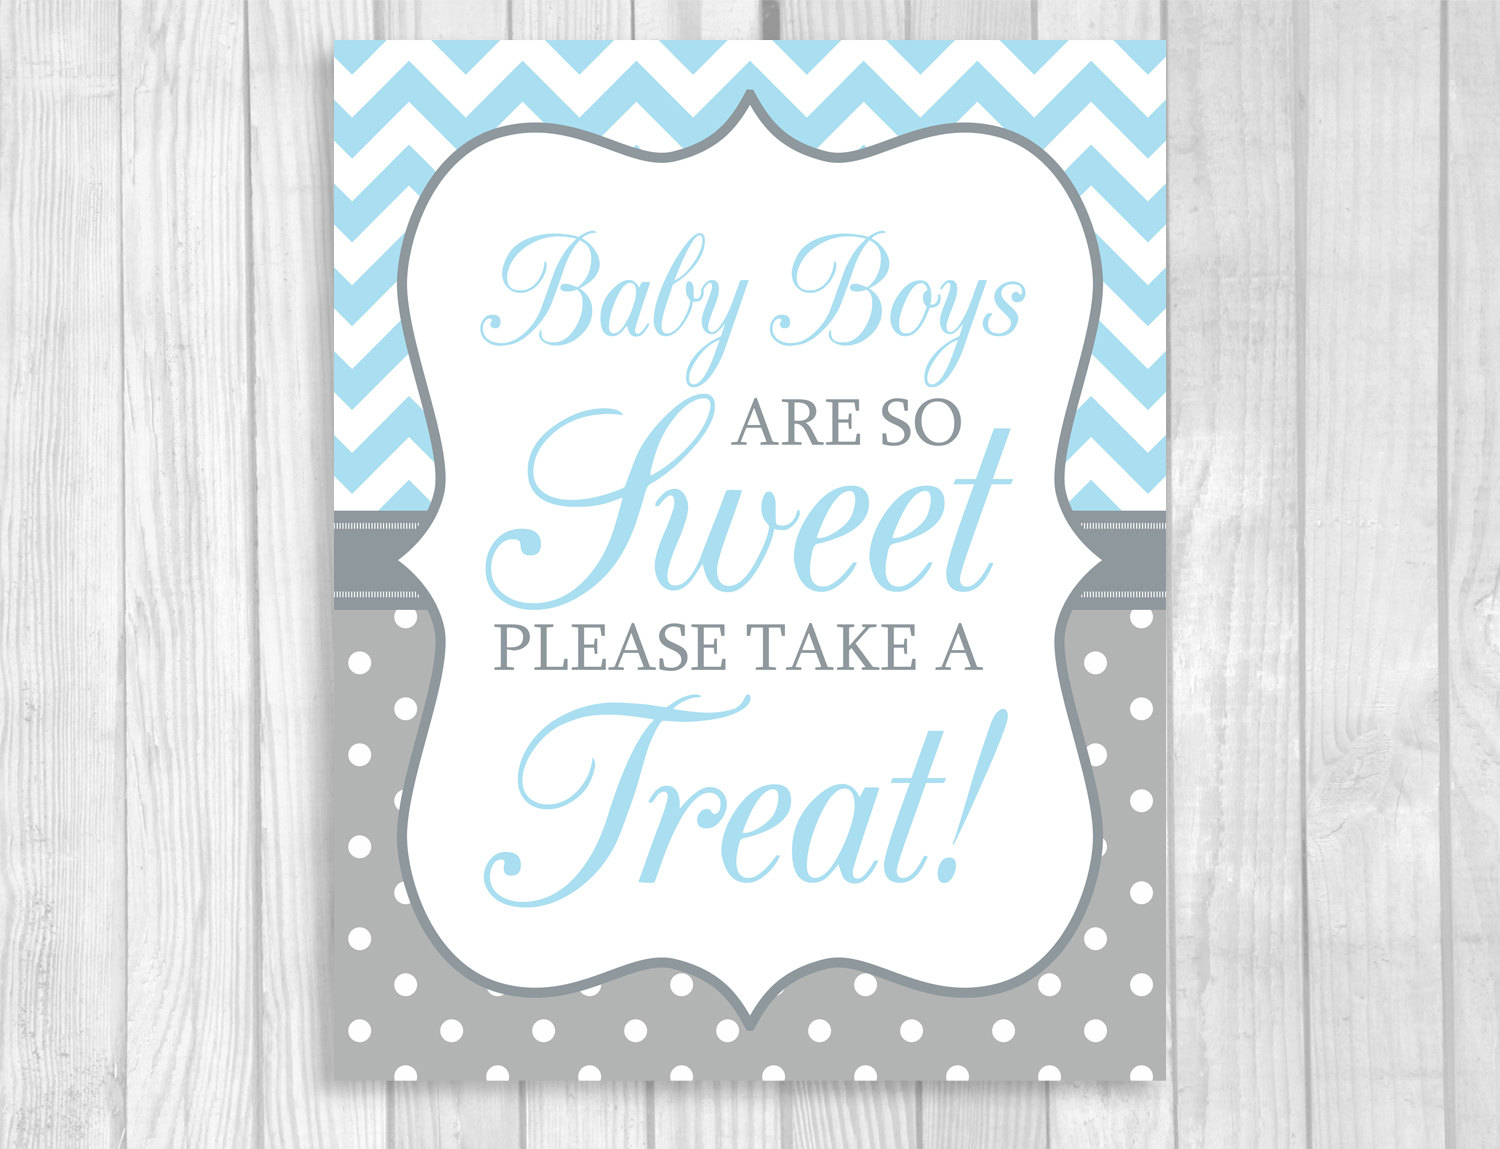 Candy Table Signs For Baby Shower - Baby Shower Ideas - Free Printable Baby Shower Table Signs